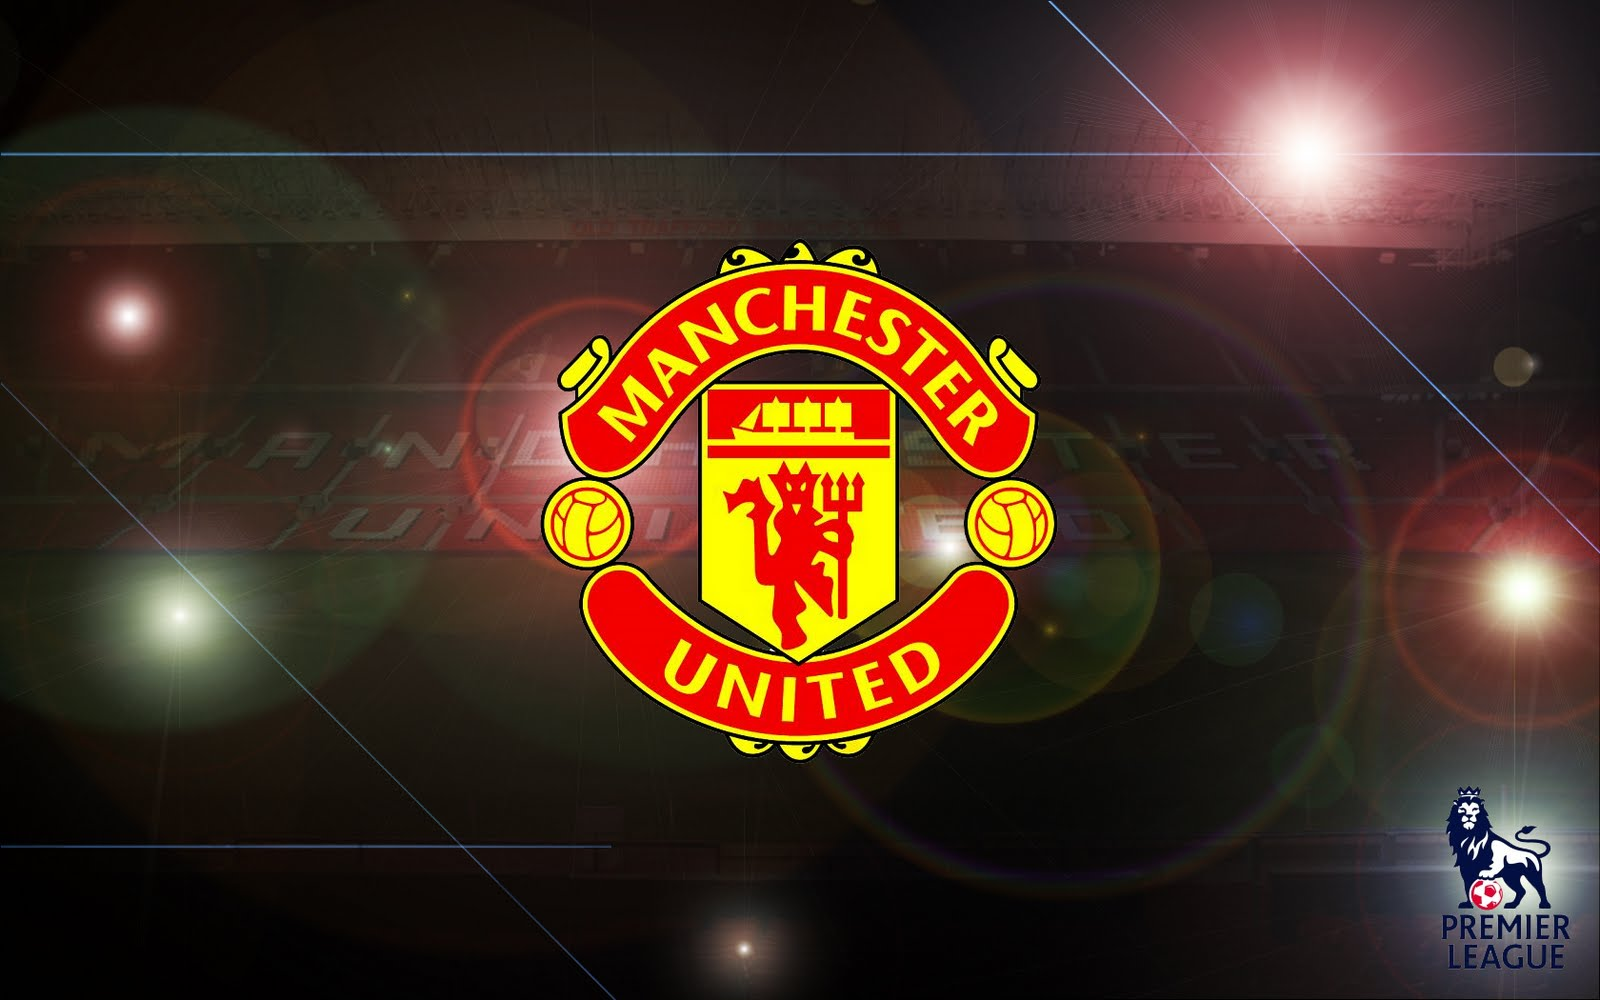 Manchester United Iphone Wallpaper Simplexpict1st Org